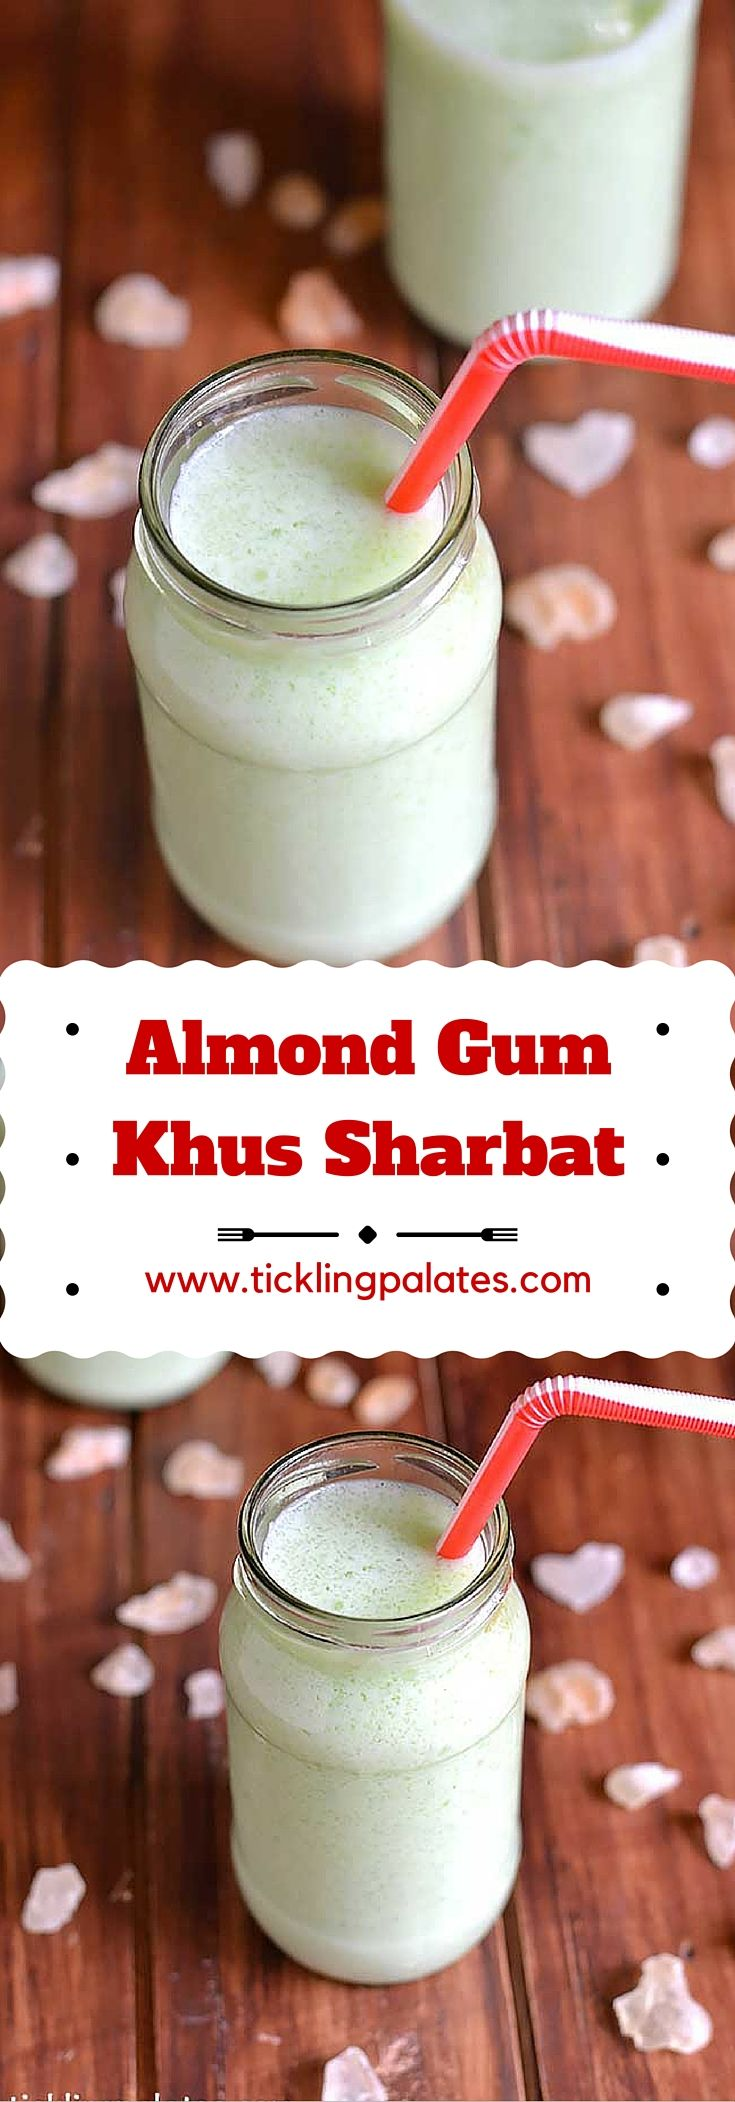 Badam Pisin (Almond Gum) & Khus Sharbat recipe for the hot summer days as both of them being natural body coolers. #summer #drinks #glutenfree